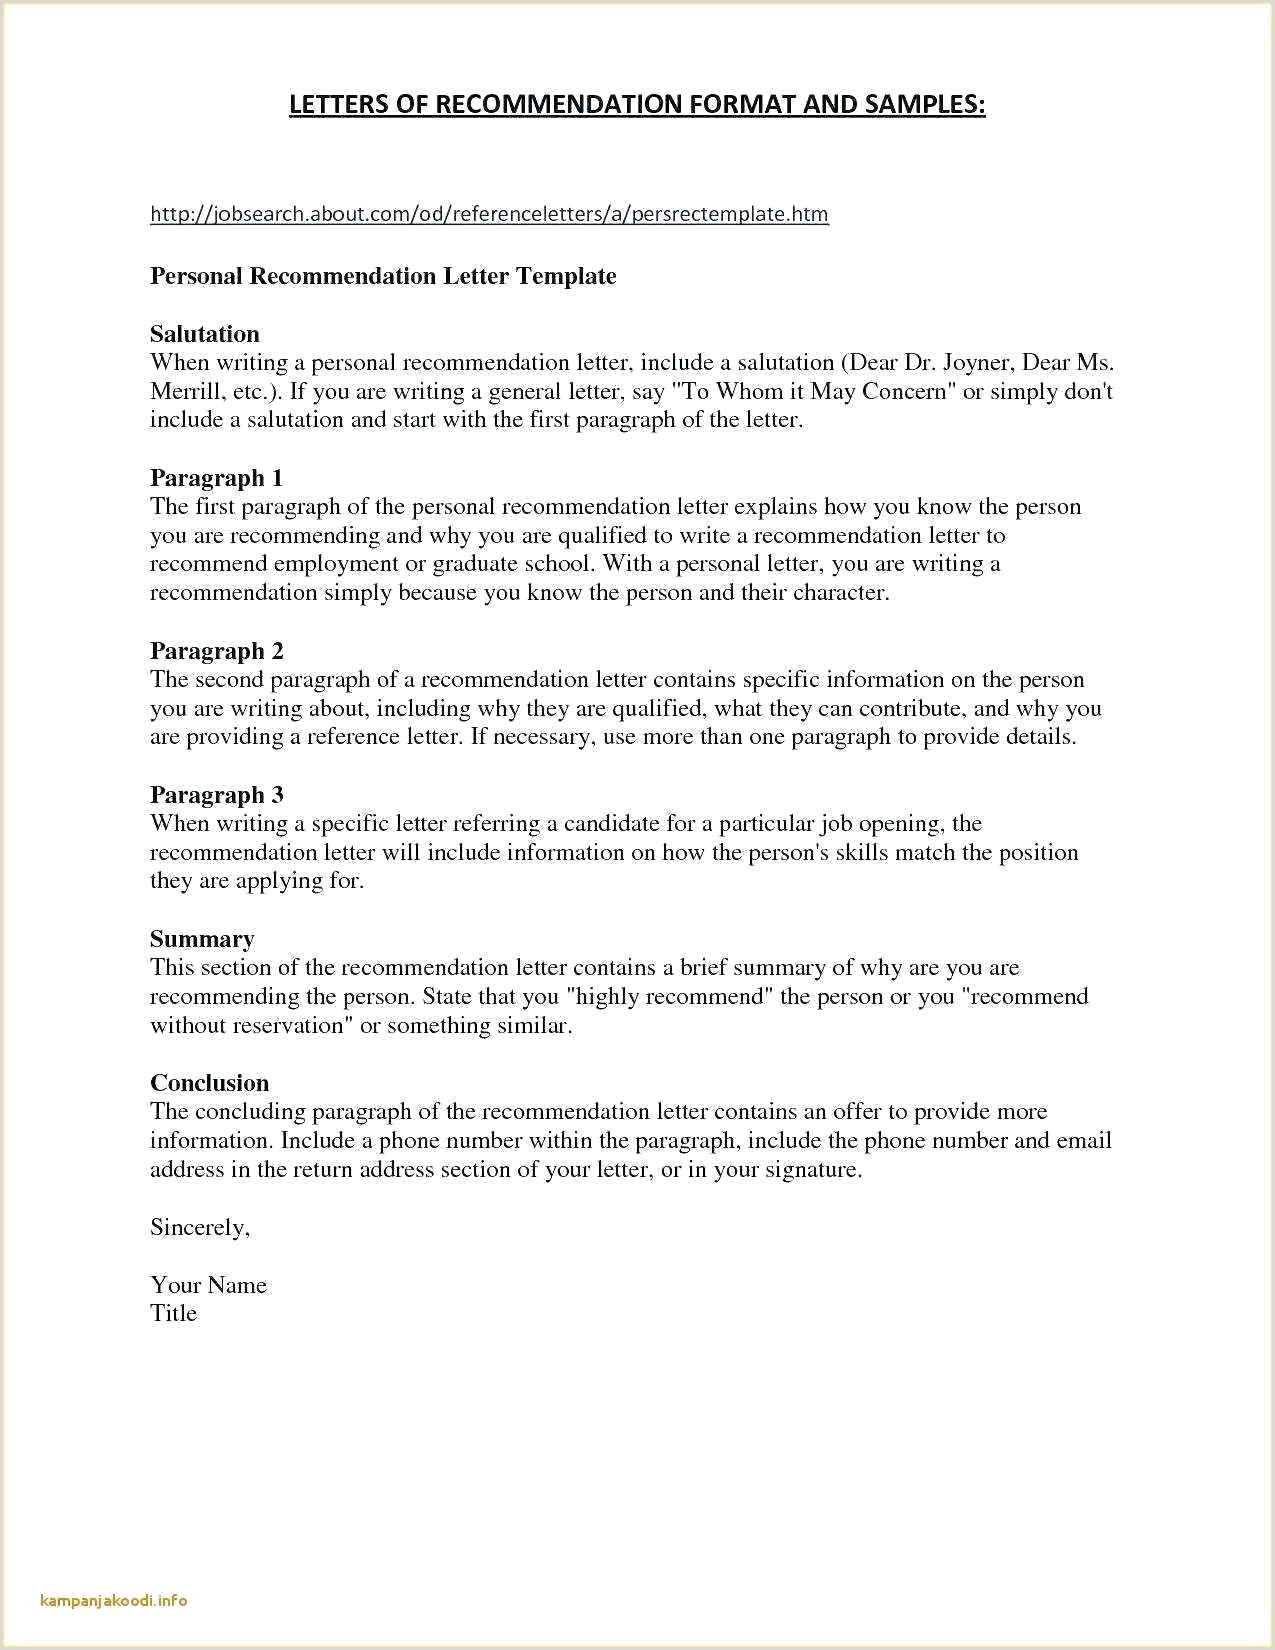 Professional Cv format Doc Phd Resume Template Doc – Riosreefelite